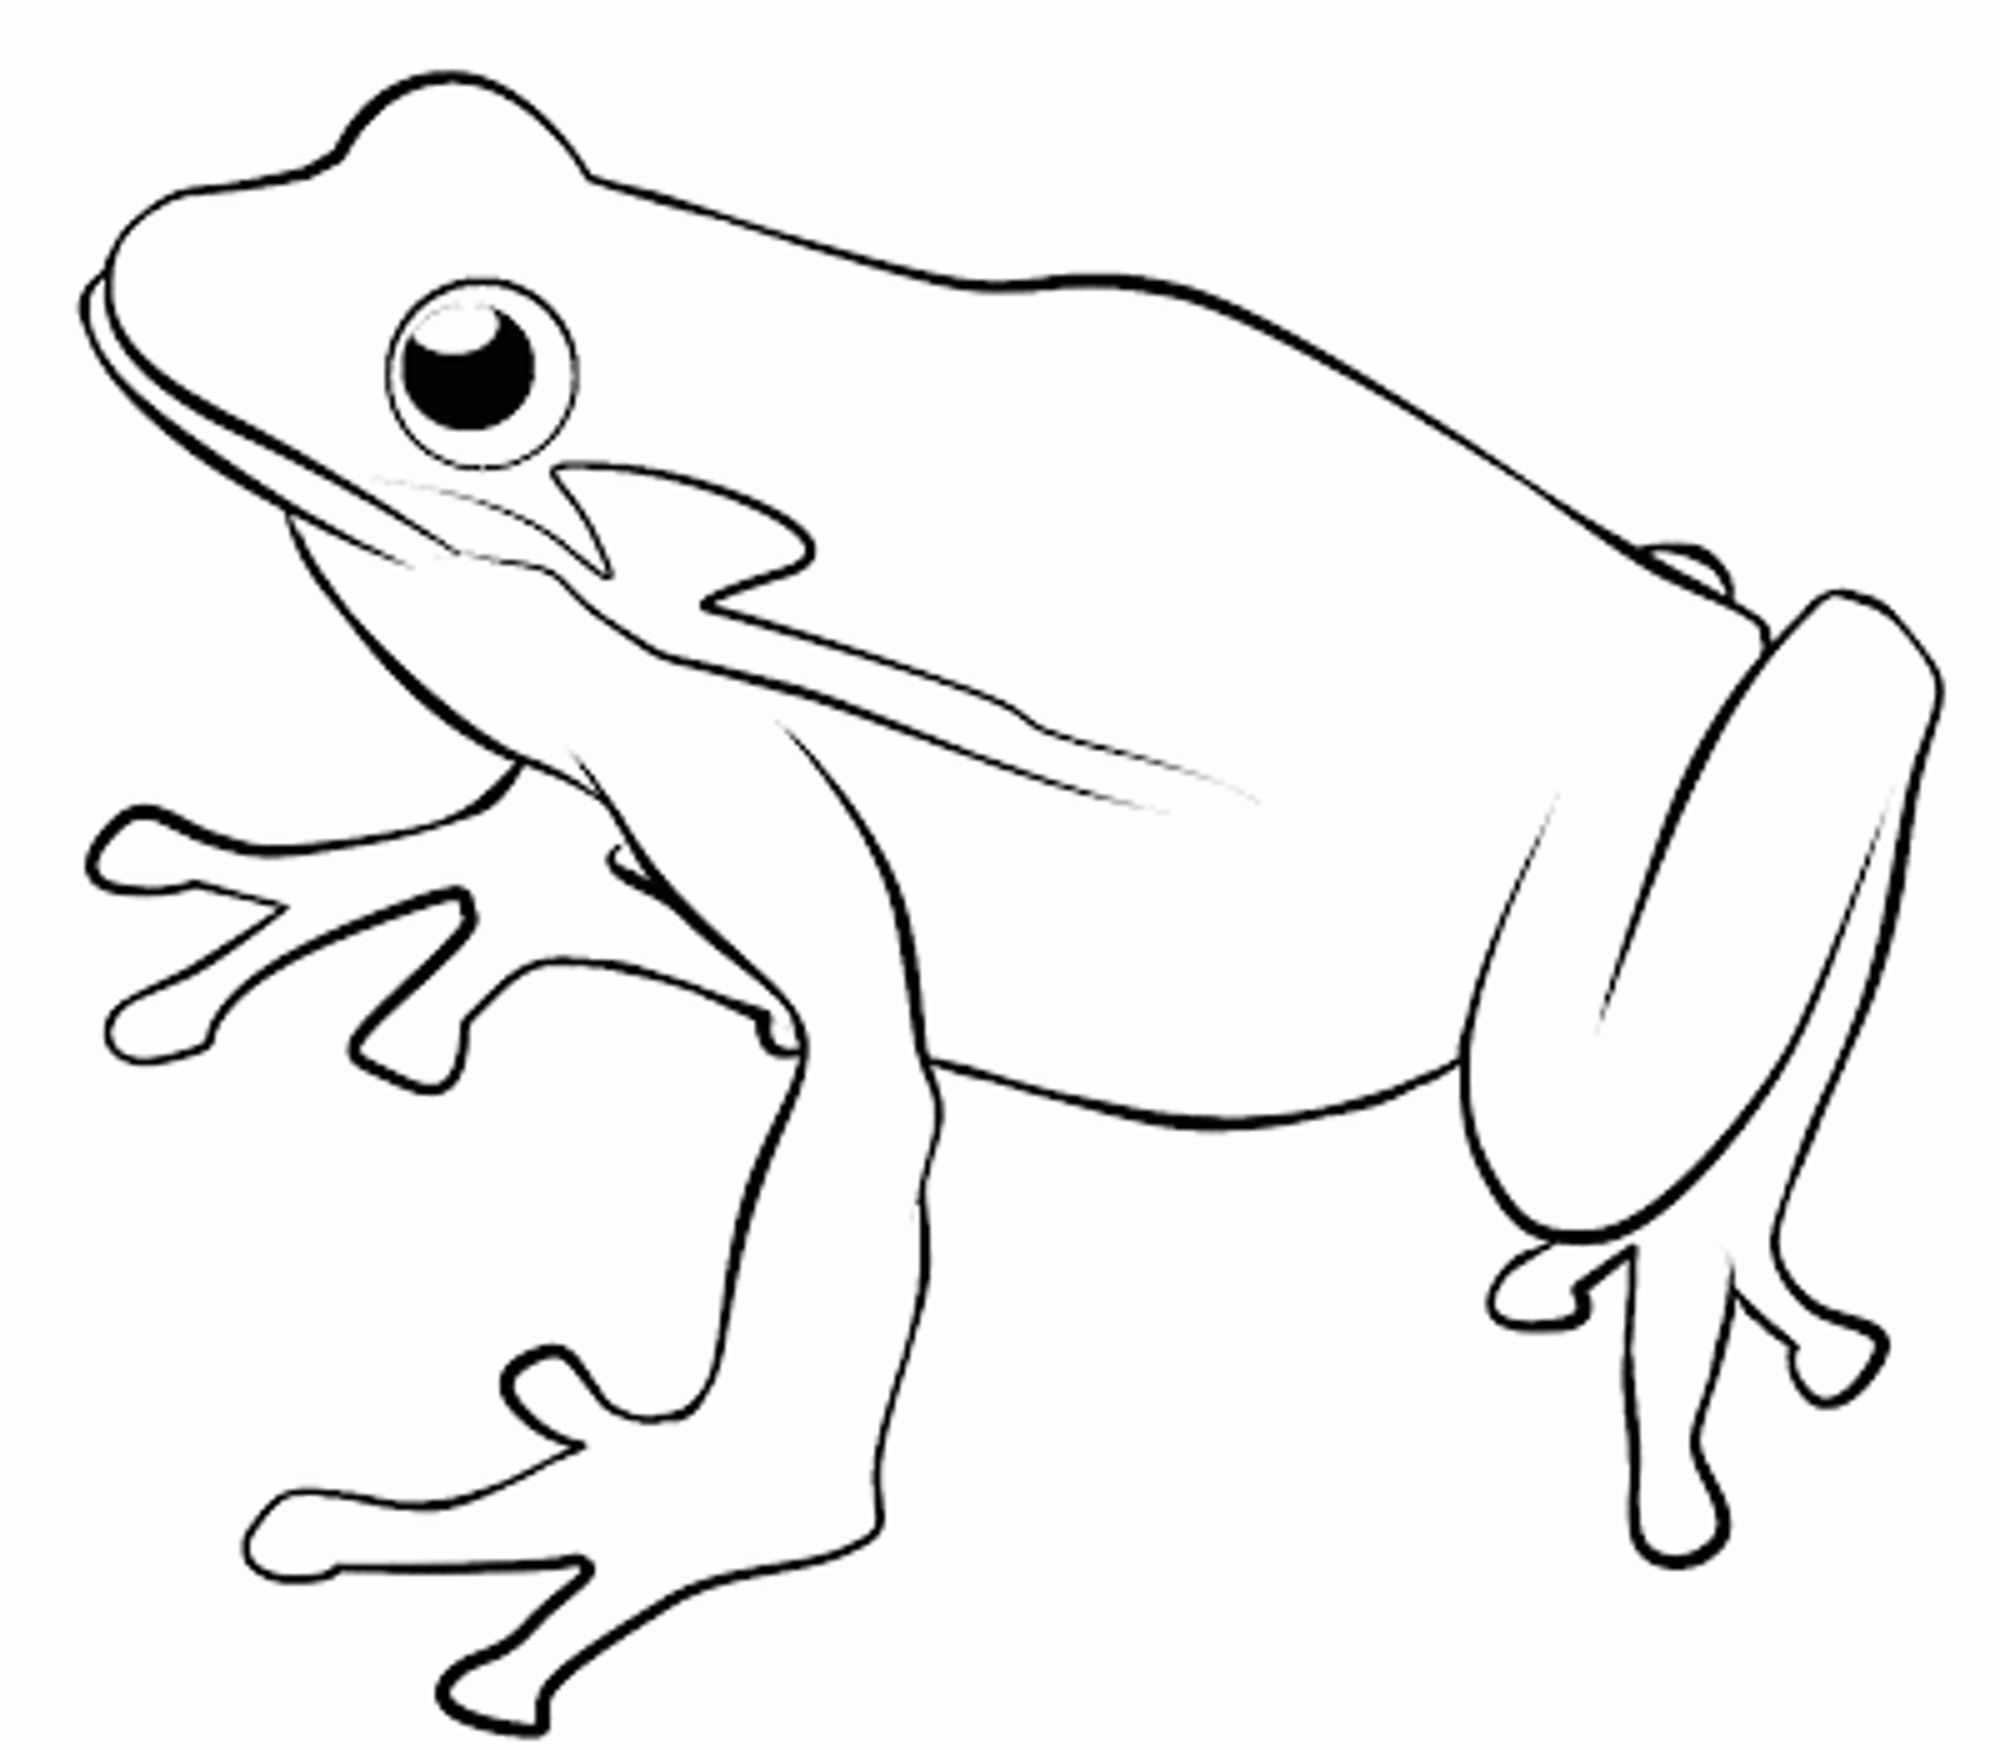 Realistic Frog Coloring Pages at GetDrawings.com | Free for ...